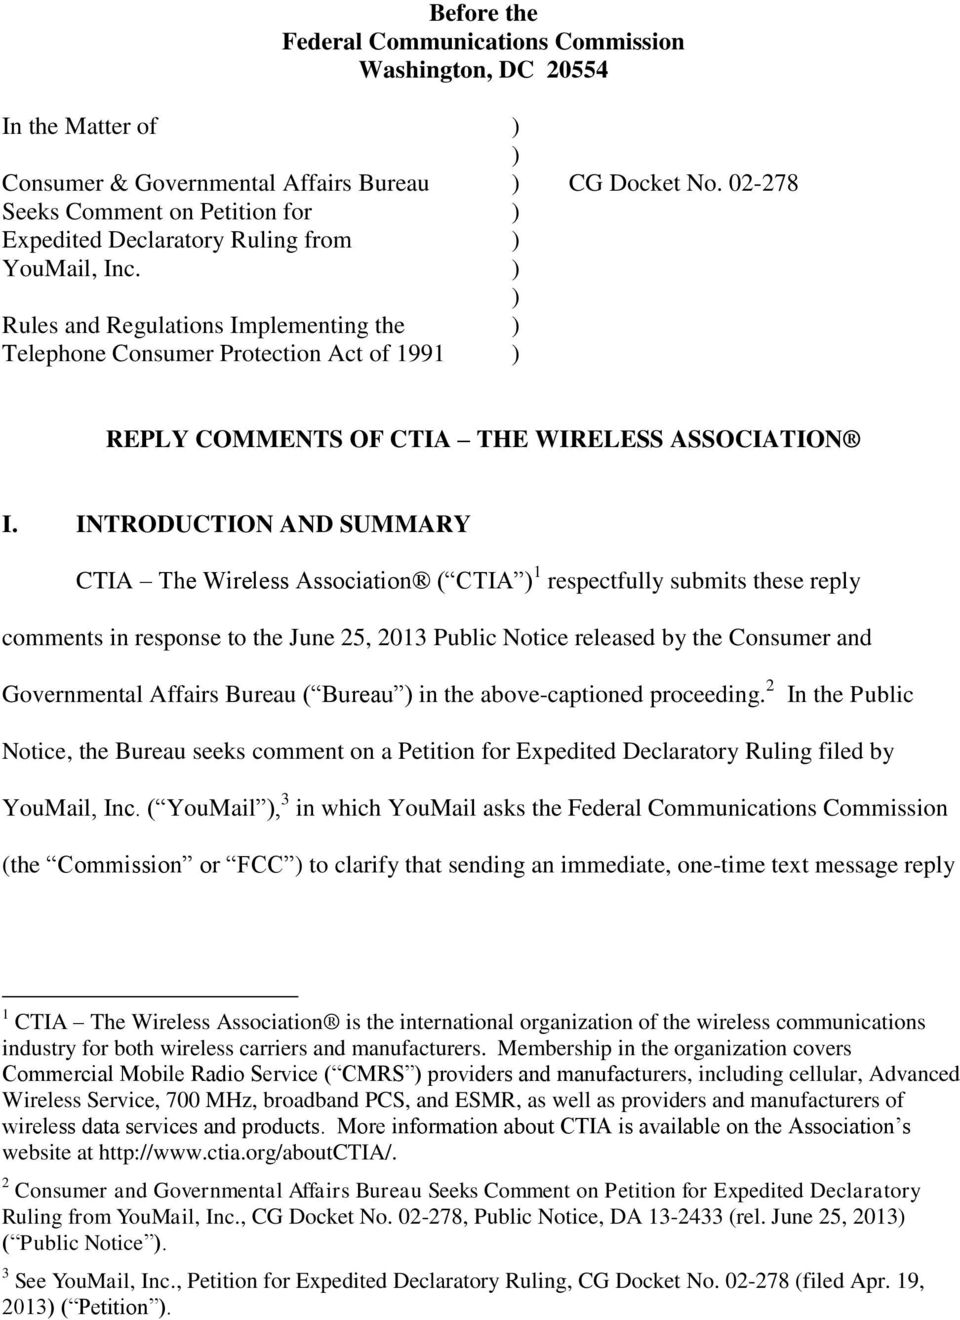 INTRODUCTION AND SUMMARY CTIA The Wireless Association ( CTIA 1 respectfully submits these reply comments in response to the June 25, 2013 Public Notice released by the Consumer and Governmental